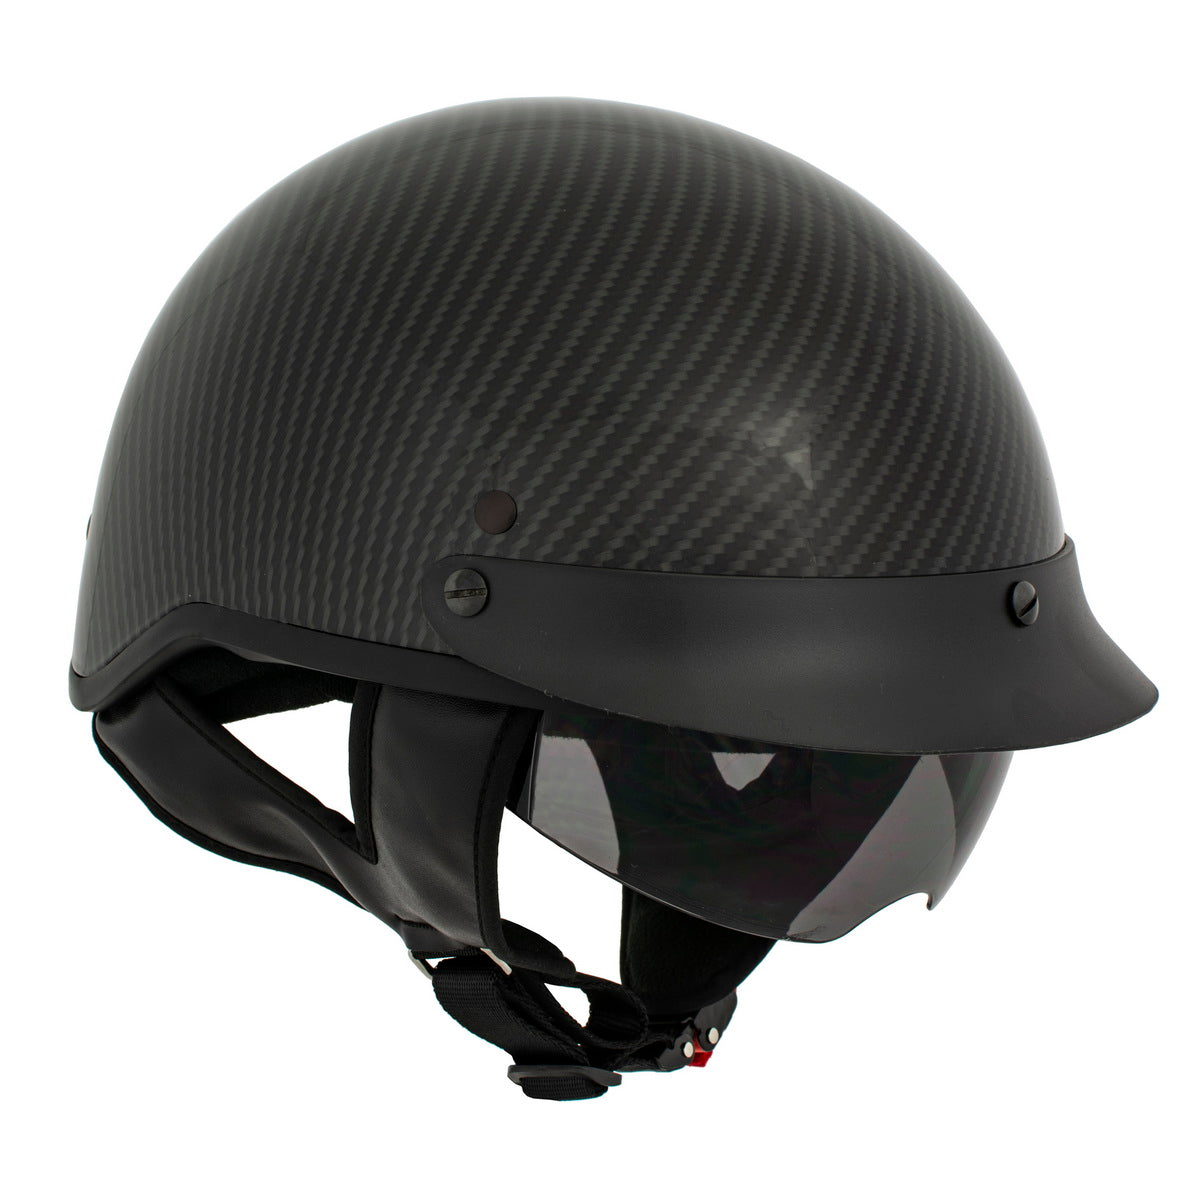 Milwaukee Performance Helmet MPH9723DOT Glossy Black DOT Helmet with